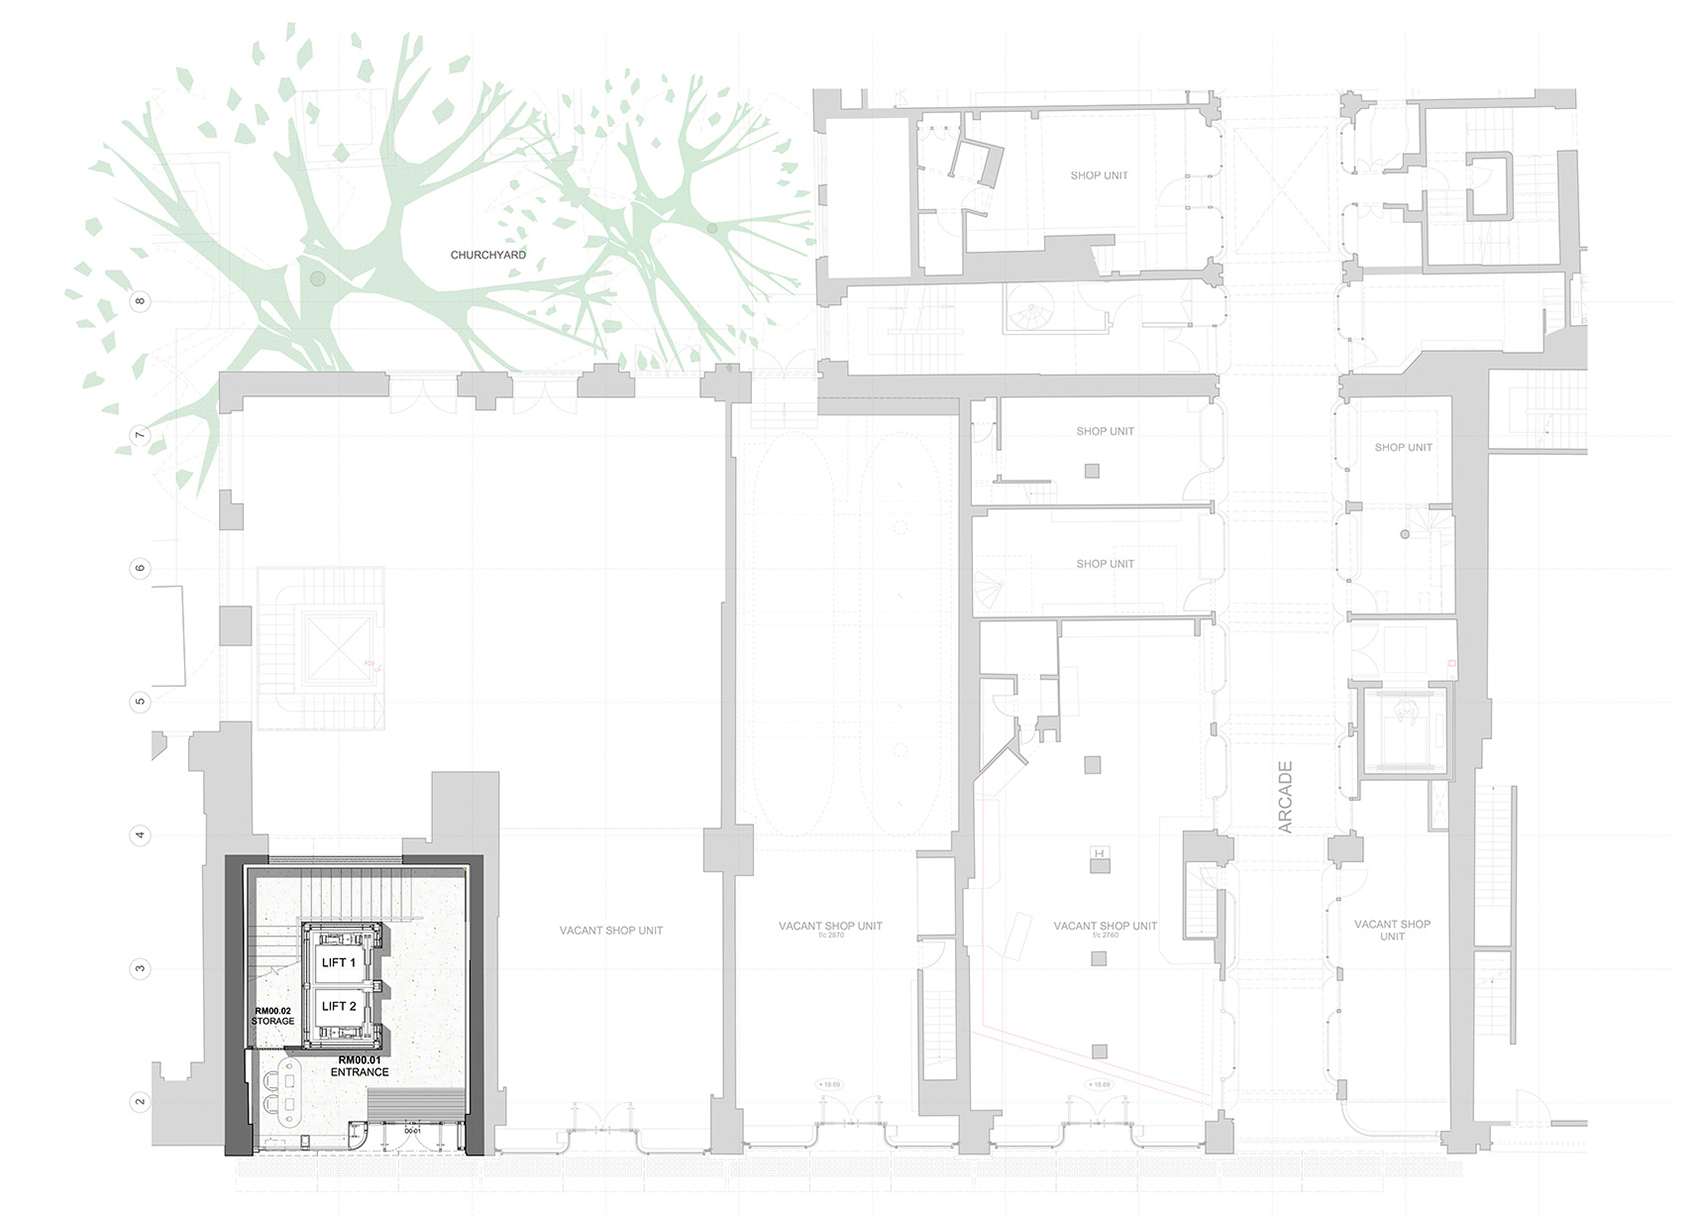 Ground Floor Plan| BAFTA headquarters at 195 Piccadilly| Benedetti Architects | STIR